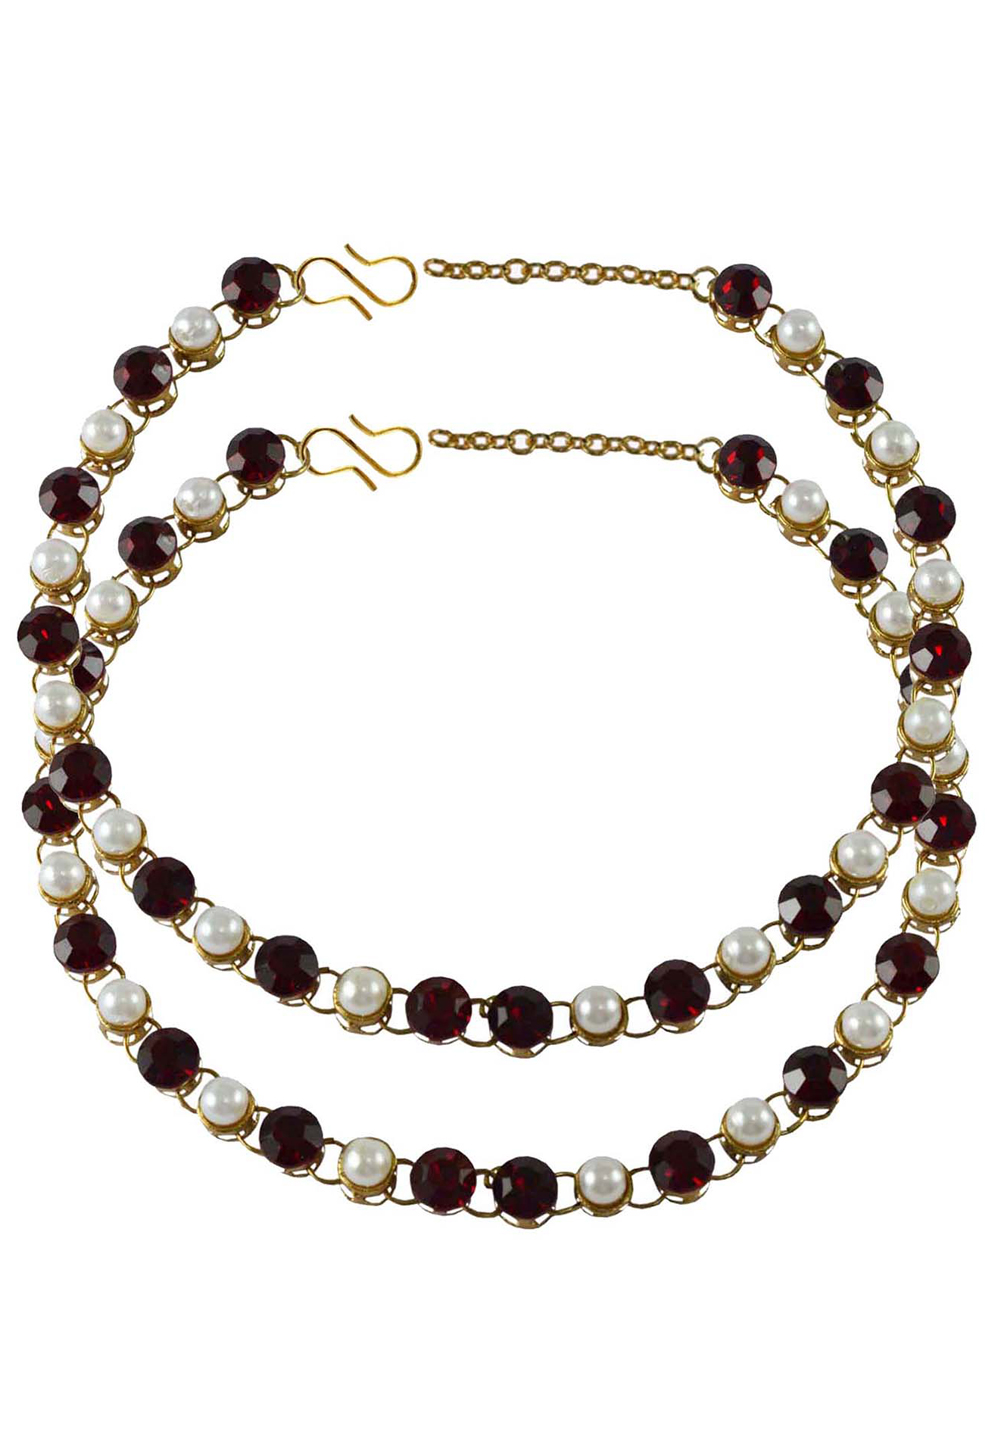 Maroon Brass Gold Plated Anklets 171274